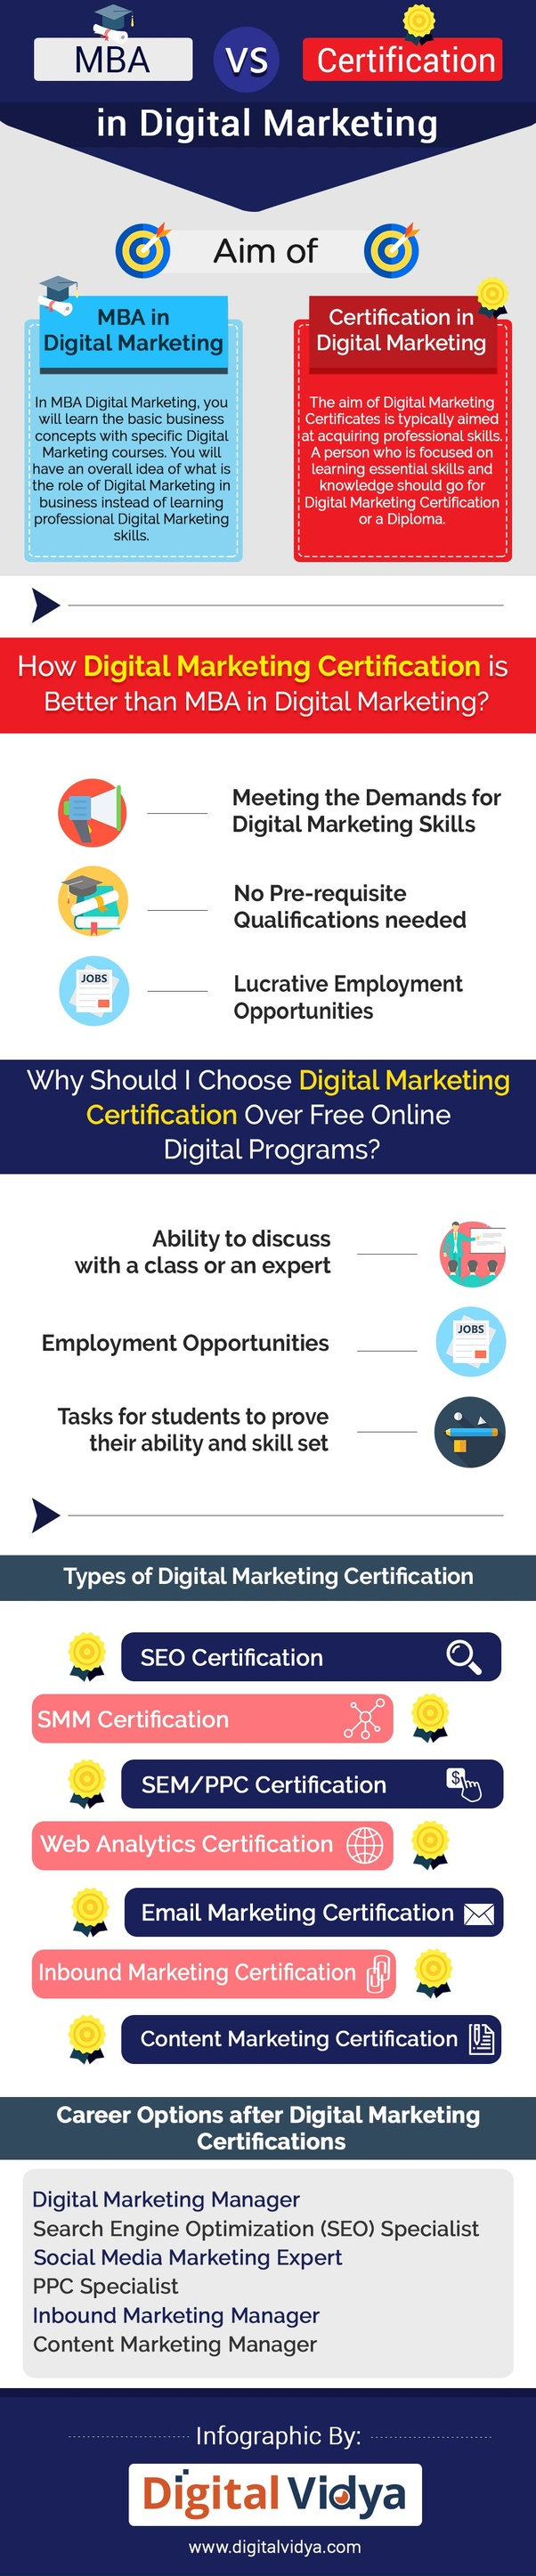 Should I Do An Mba Or Digital Marketing Certification After My